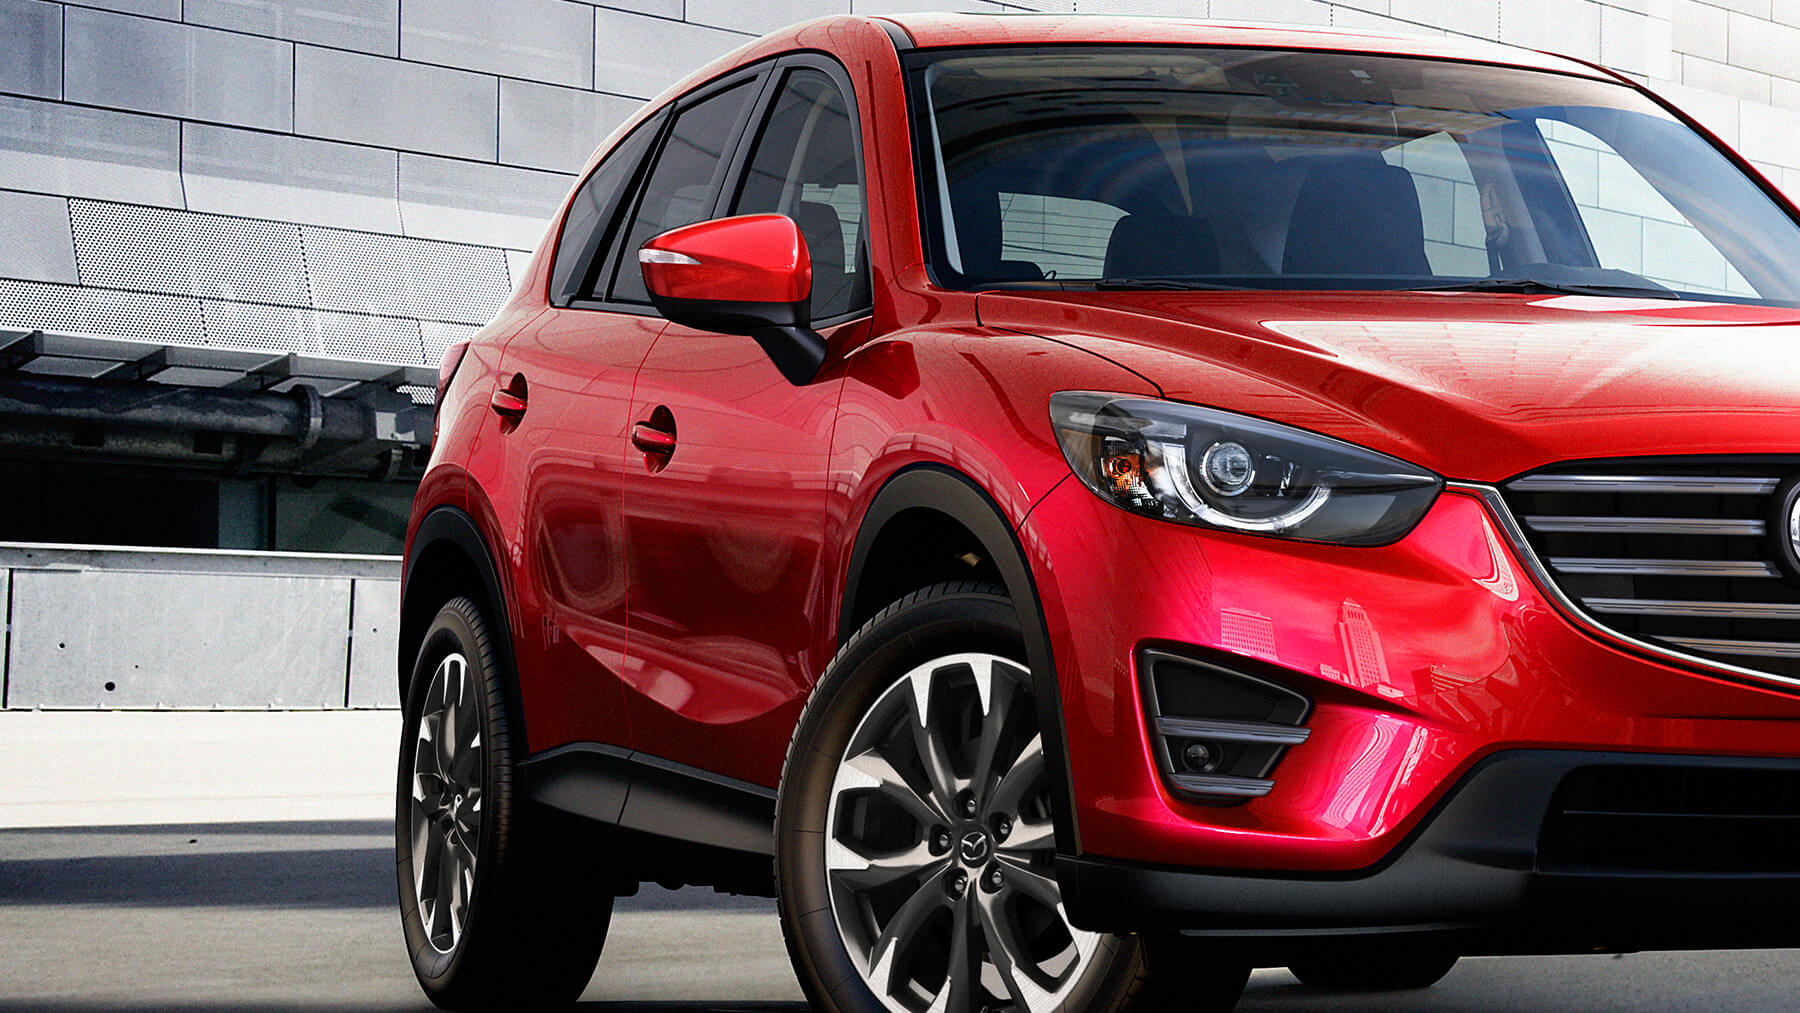 photos photo ca image starts all available price of images new cx at newswire en mazda download nov production